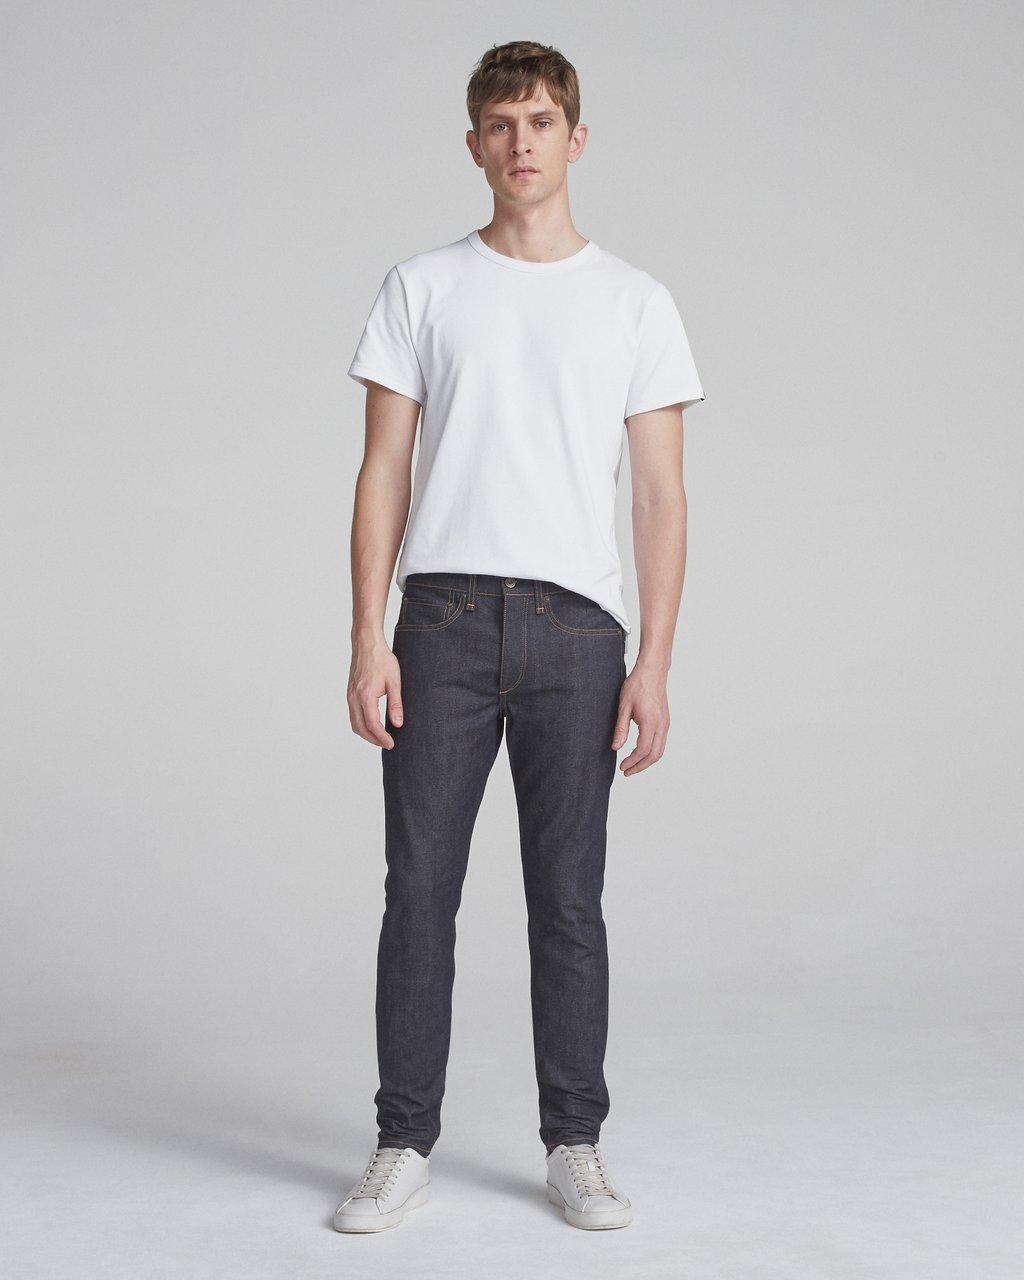 FIT 1 IN INDIGO RAW